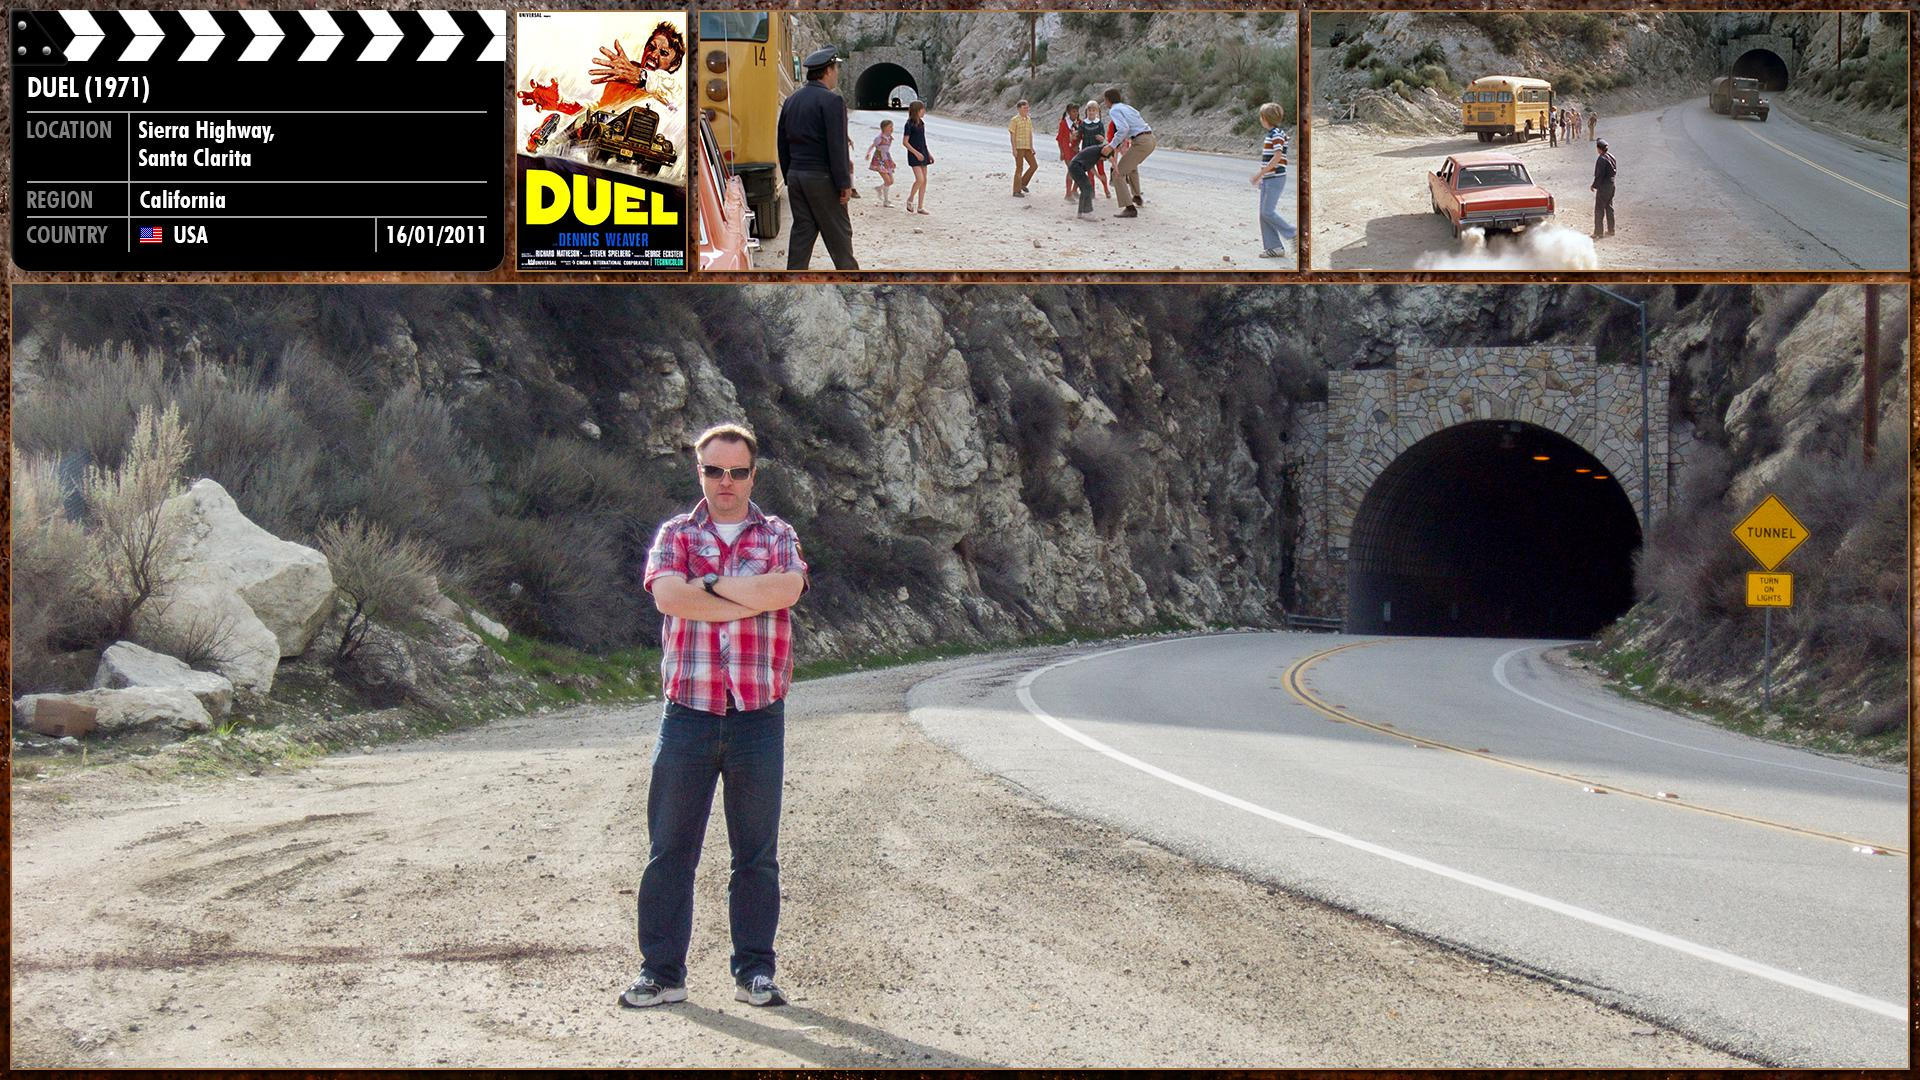 Filming location photo for Duel (1971) 5 of 5